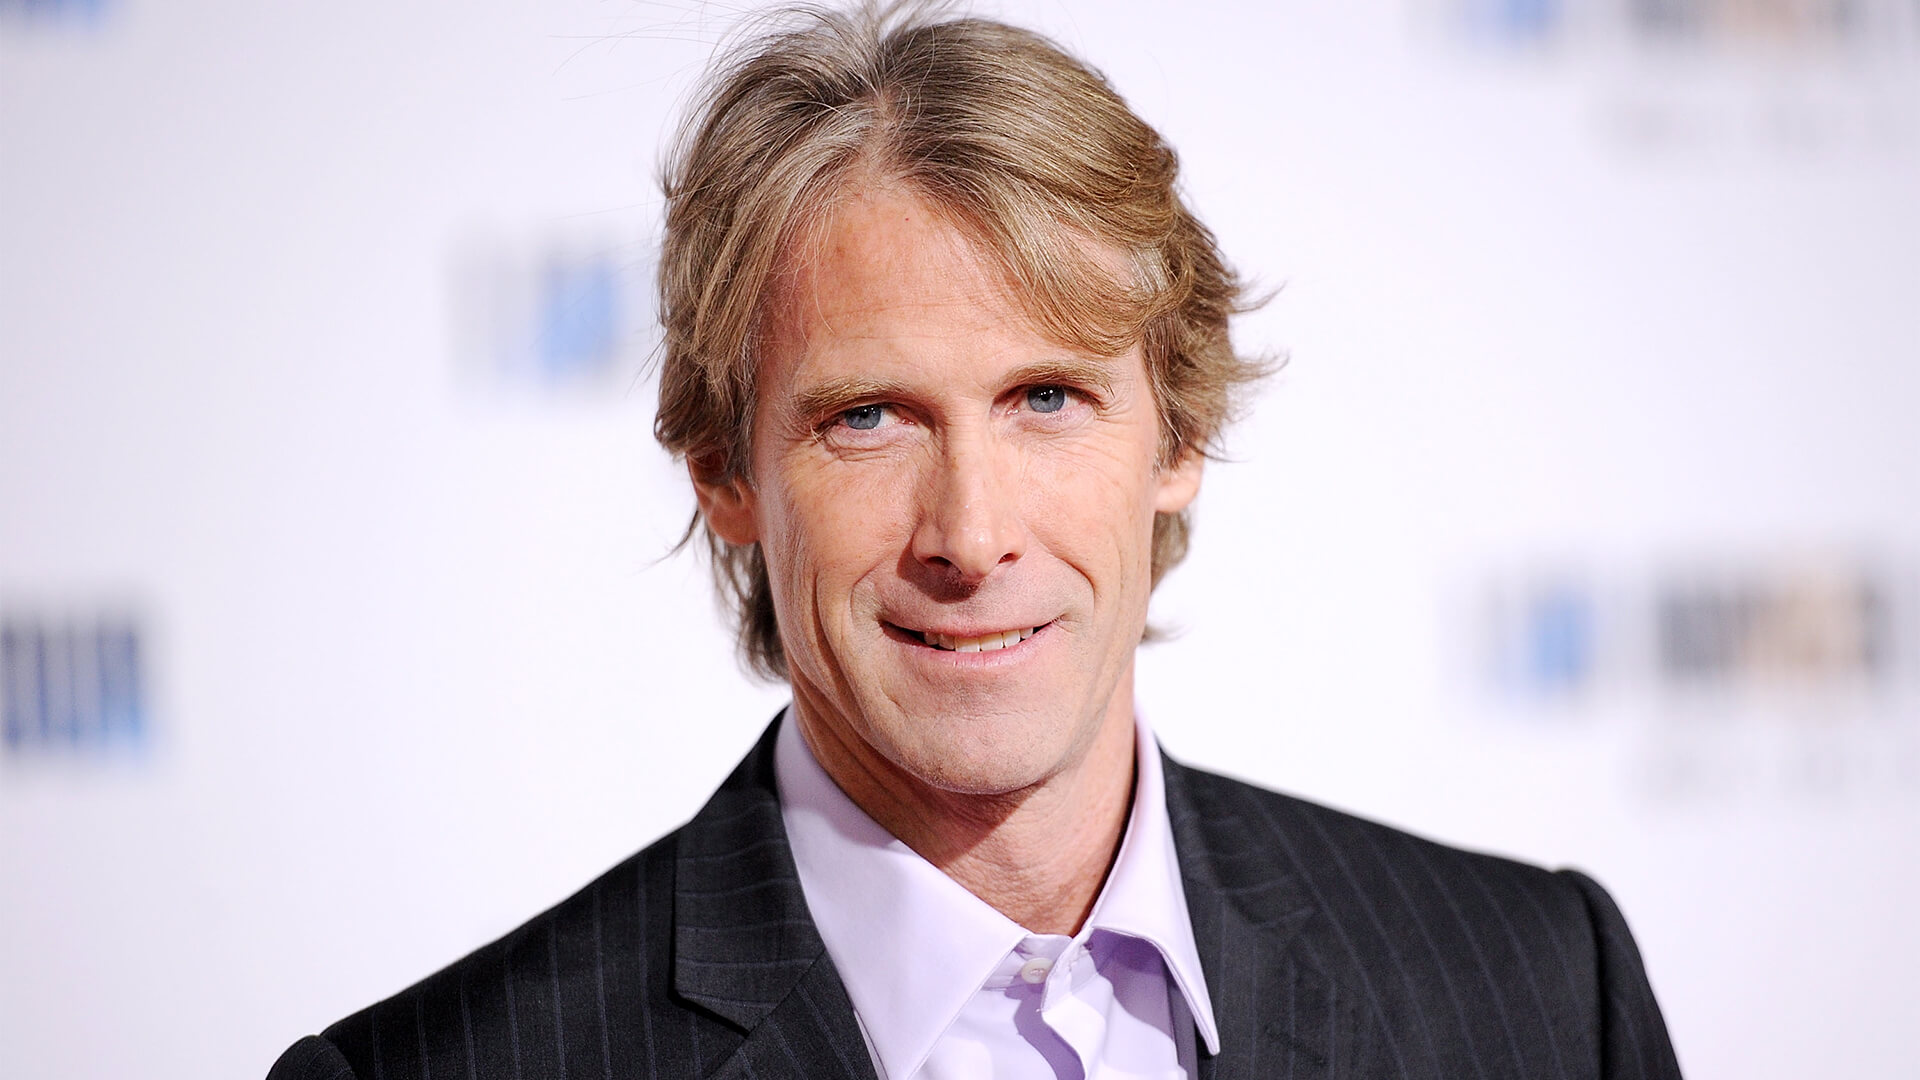 Michael Bay is known for making the TRANSFORMERS films